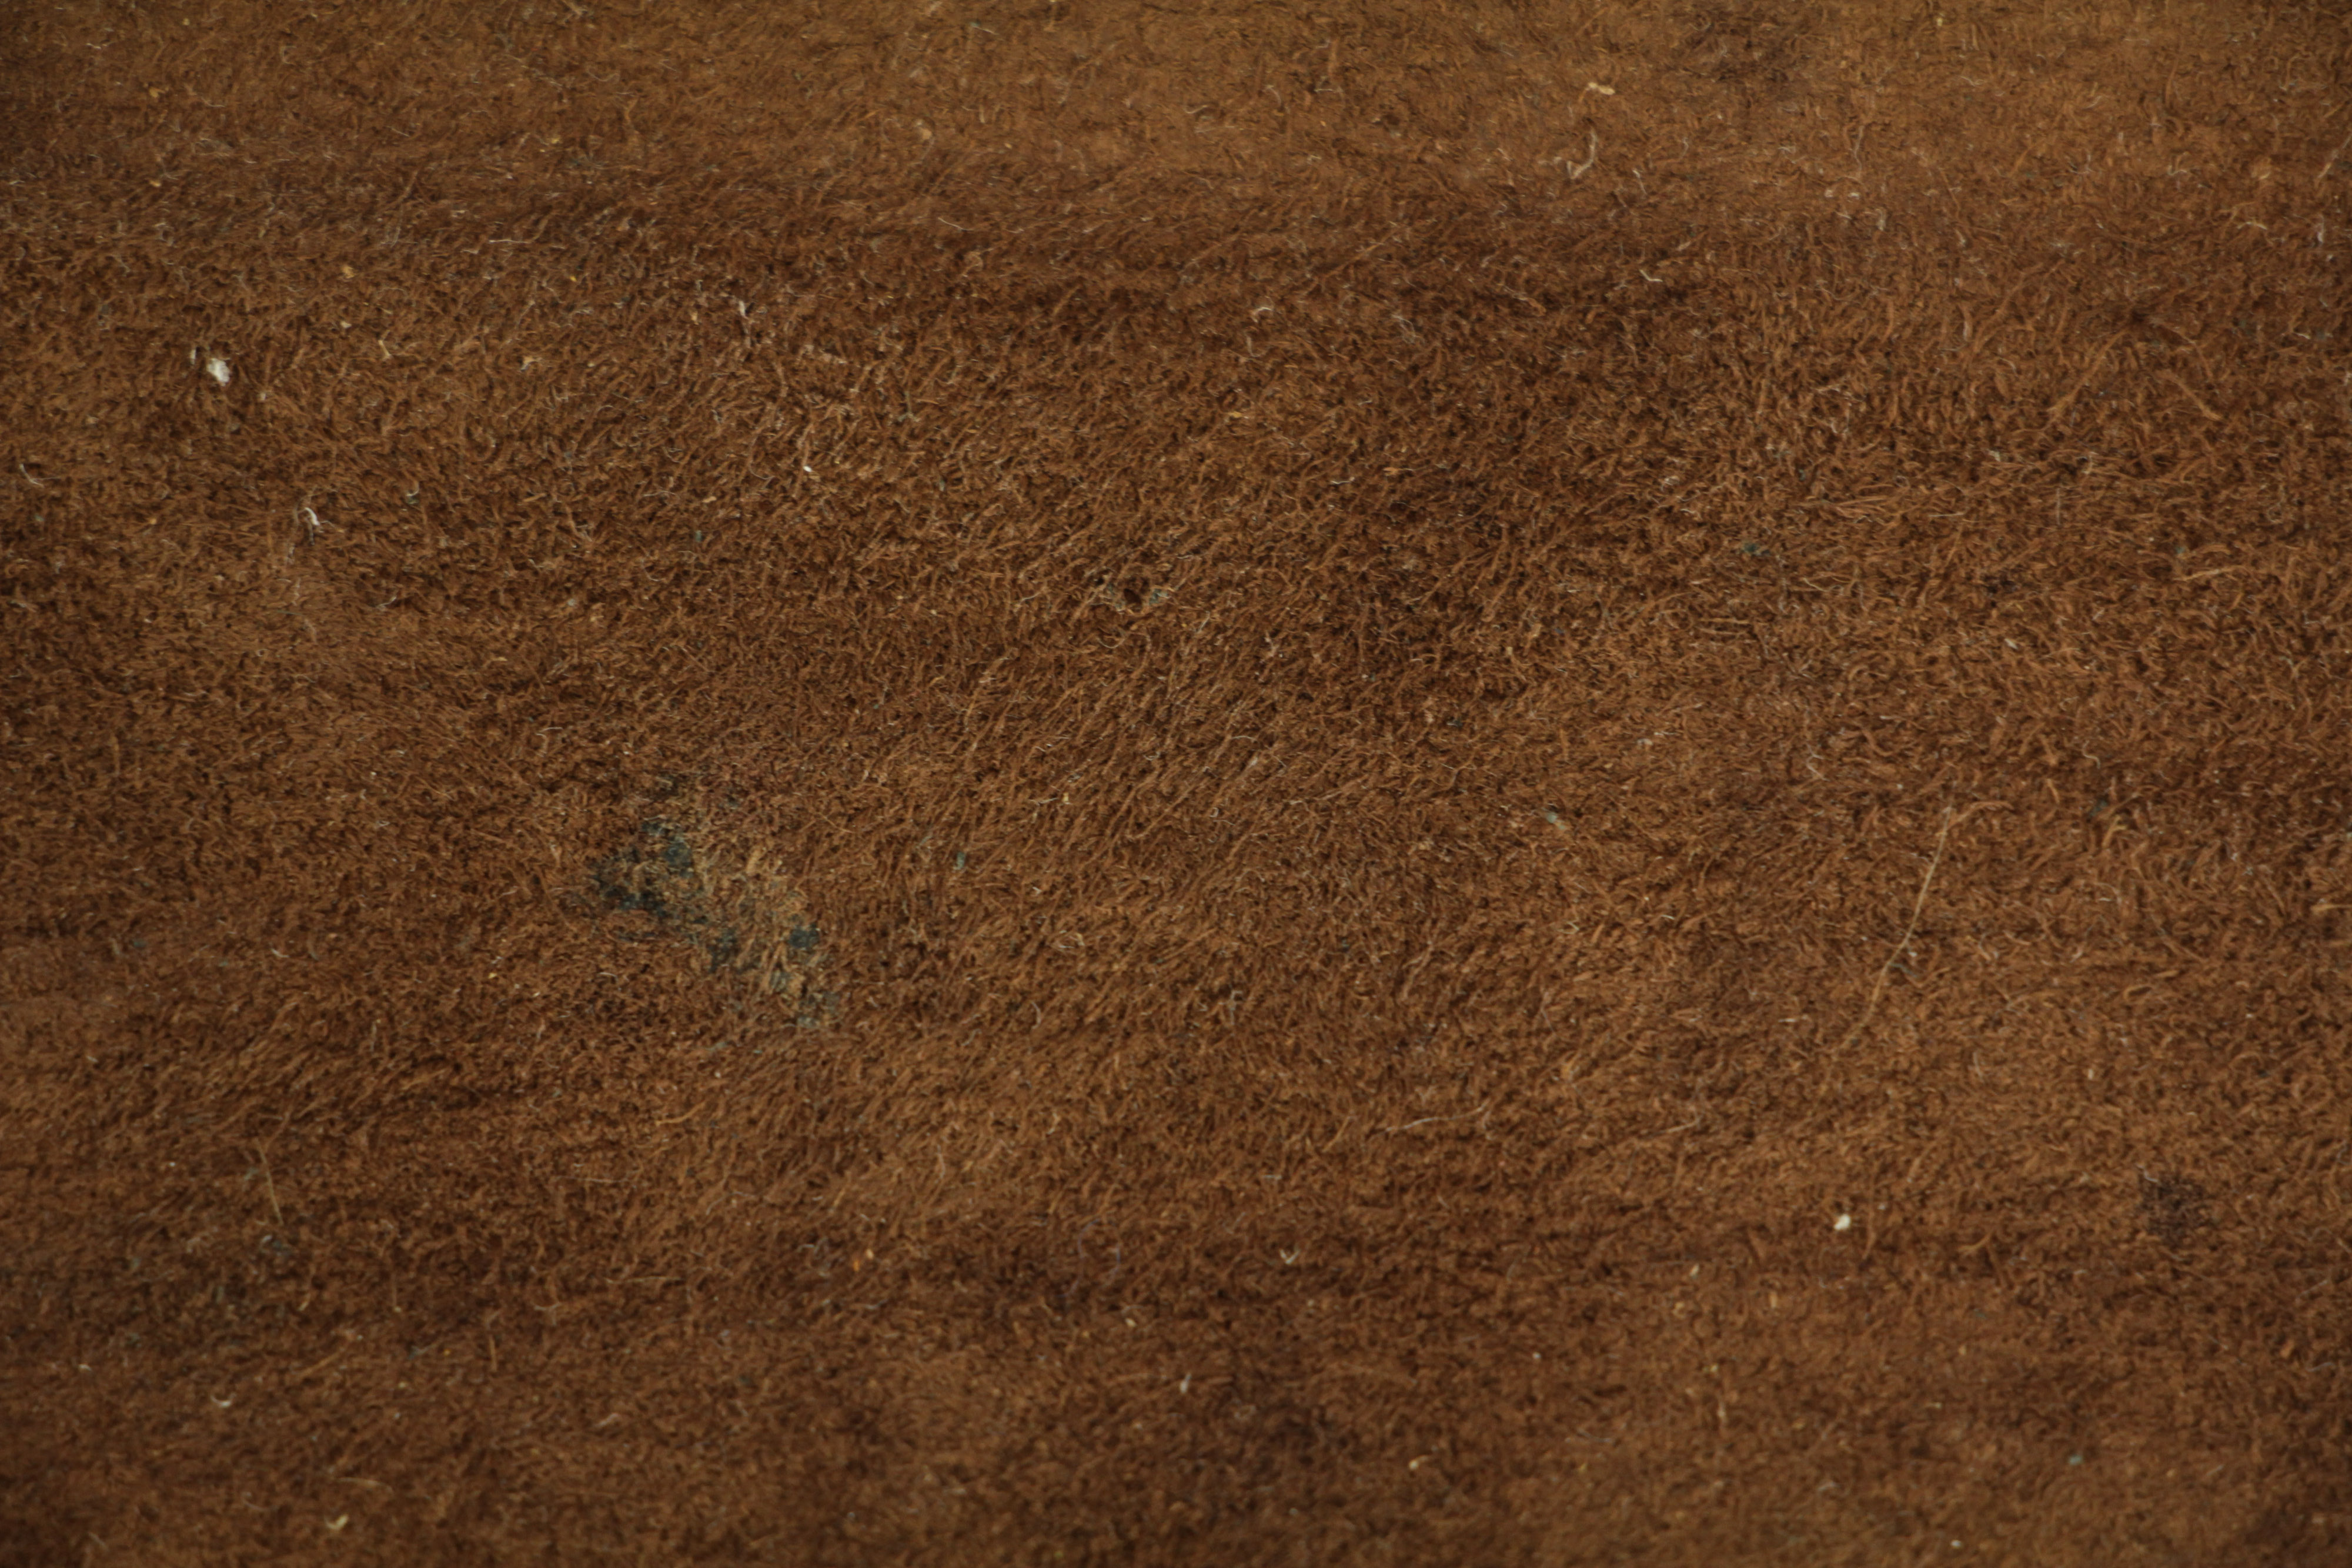 Brown Seamless Fabric Textures Leather Textures Archives Texturex Free And Premium